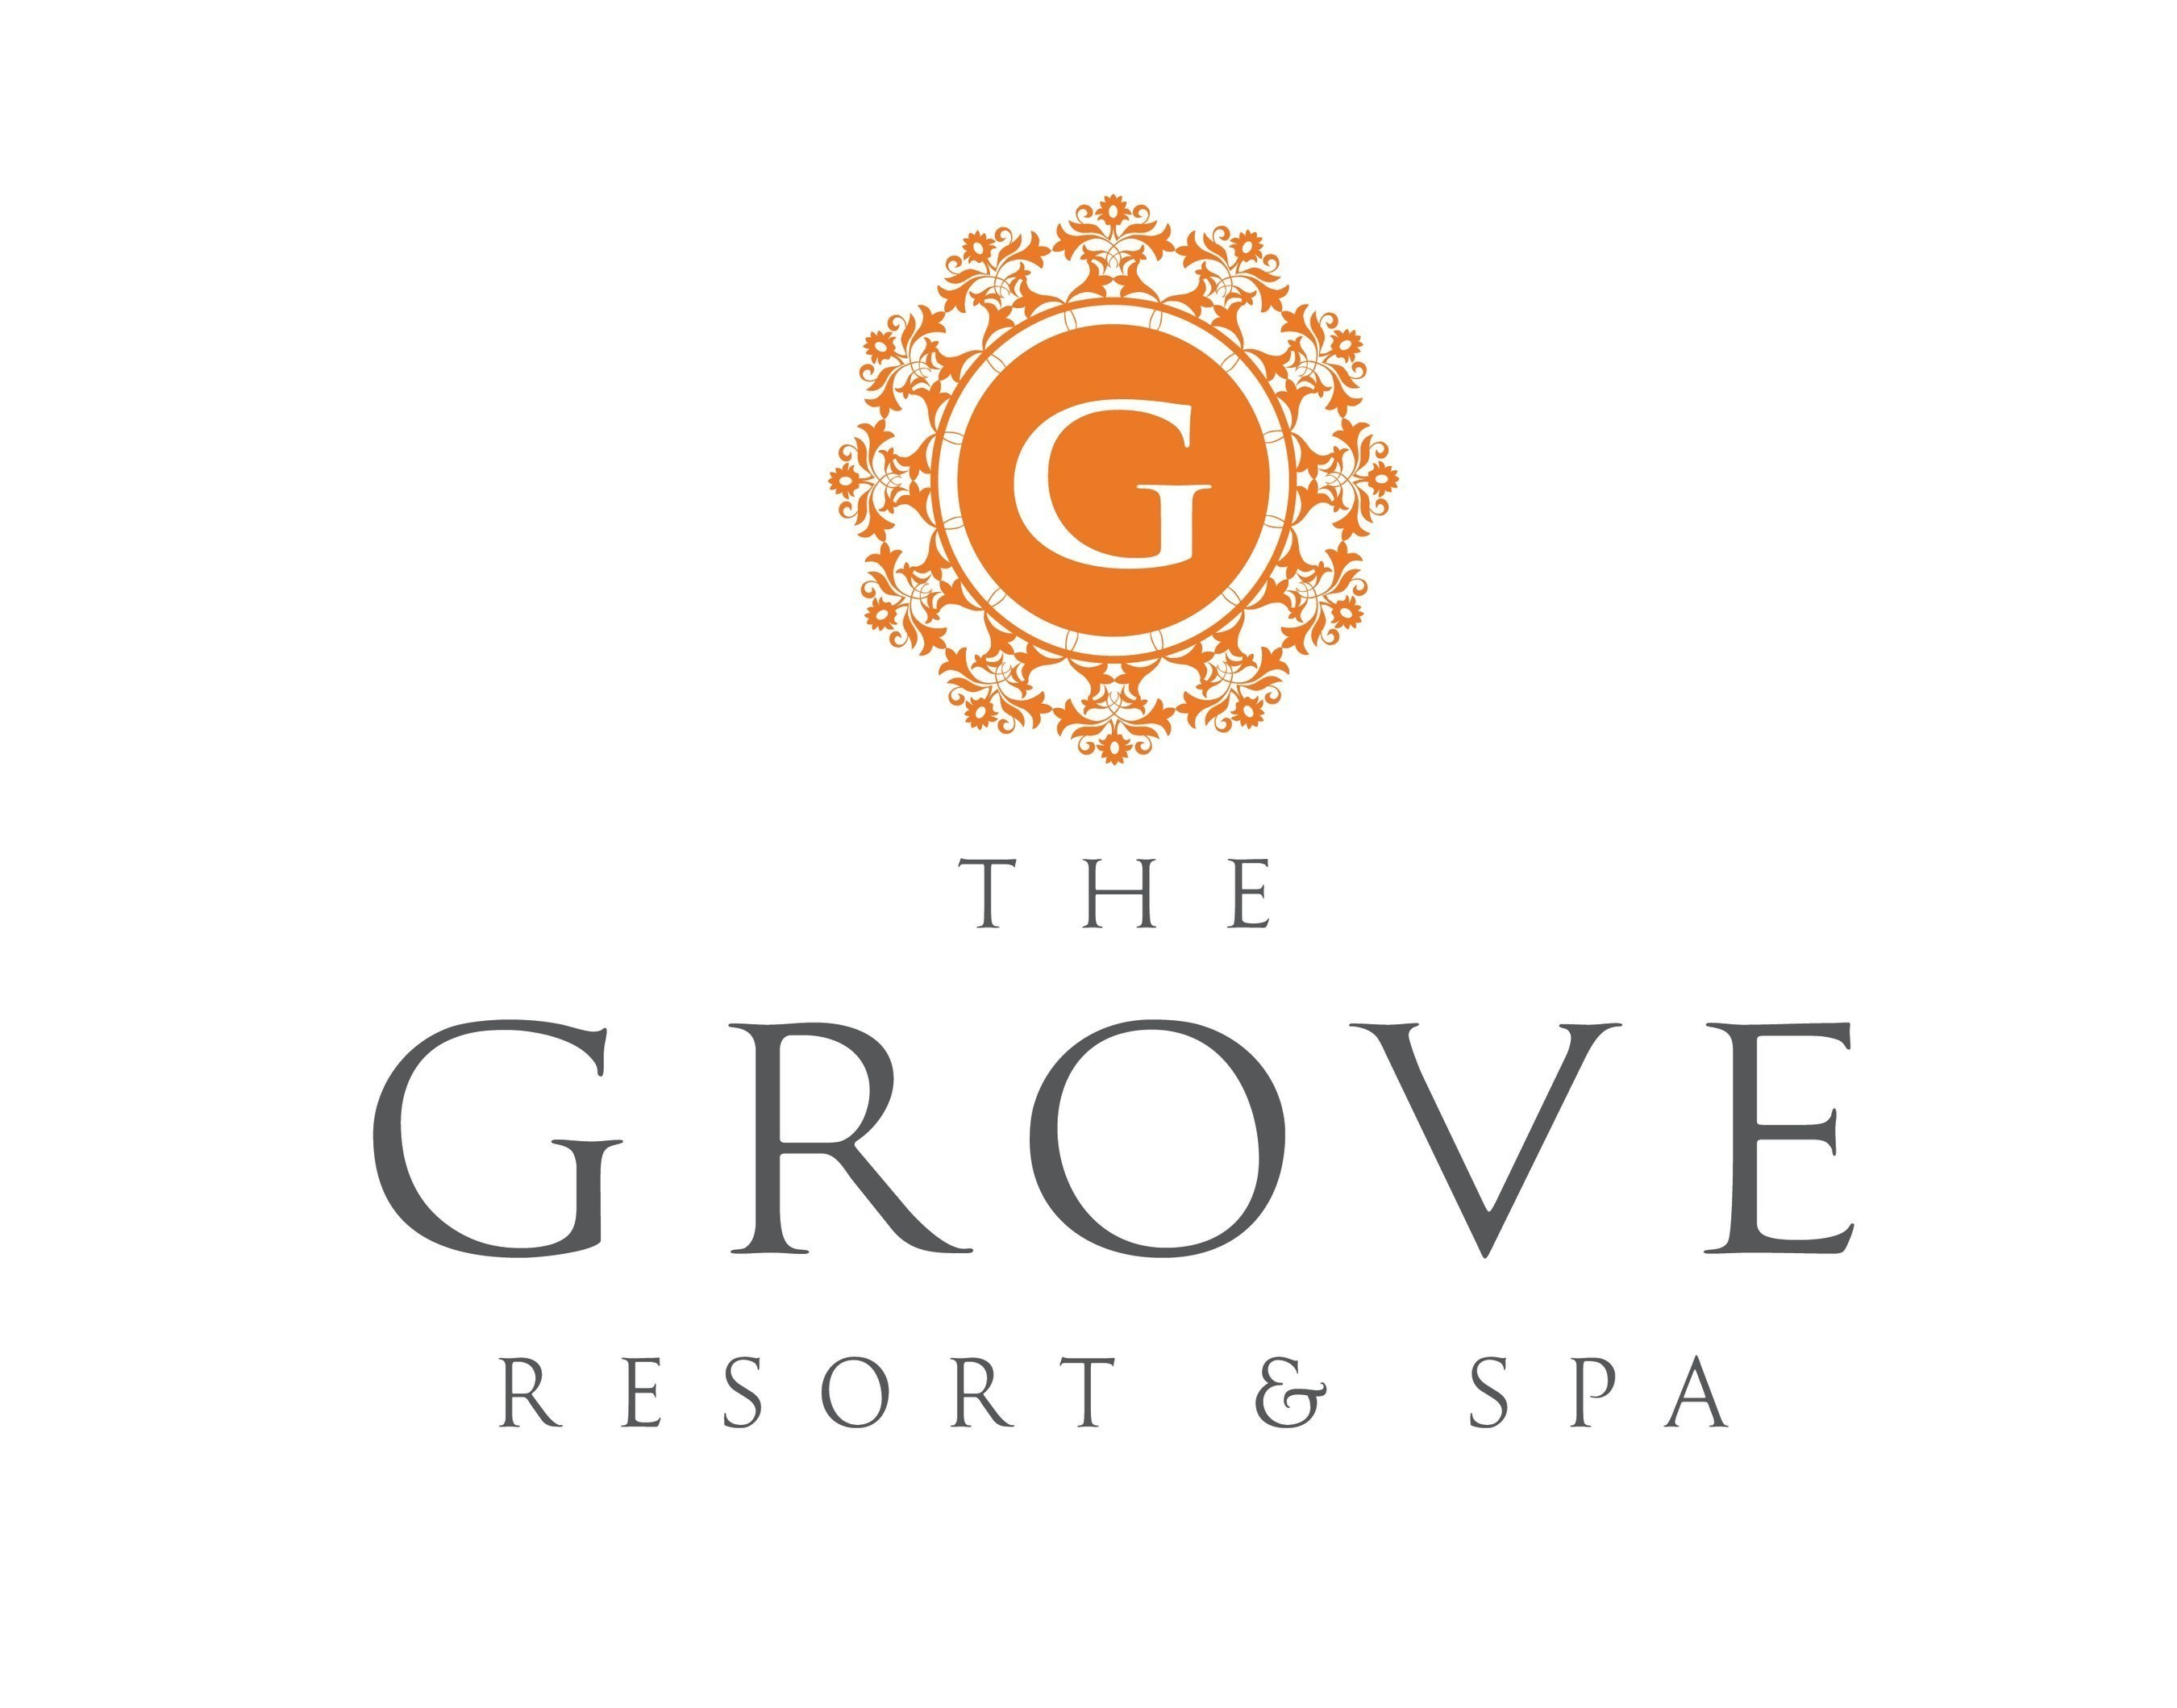 The Grove Resort & Spa is a new, all-suite hotel destination opening February 2017 in Orlando, just five minutes west of Walt Disney World. This 106-acre resort sits lakefront on a portion of Central Florida's conservation grounds. The Grove will feature all-suite accommodations with one, two and three bedroom layouts, as well as four swimming pools, multiple dining and drink venues, water sports, a spa, game room, event facilities, and an on-site water park.